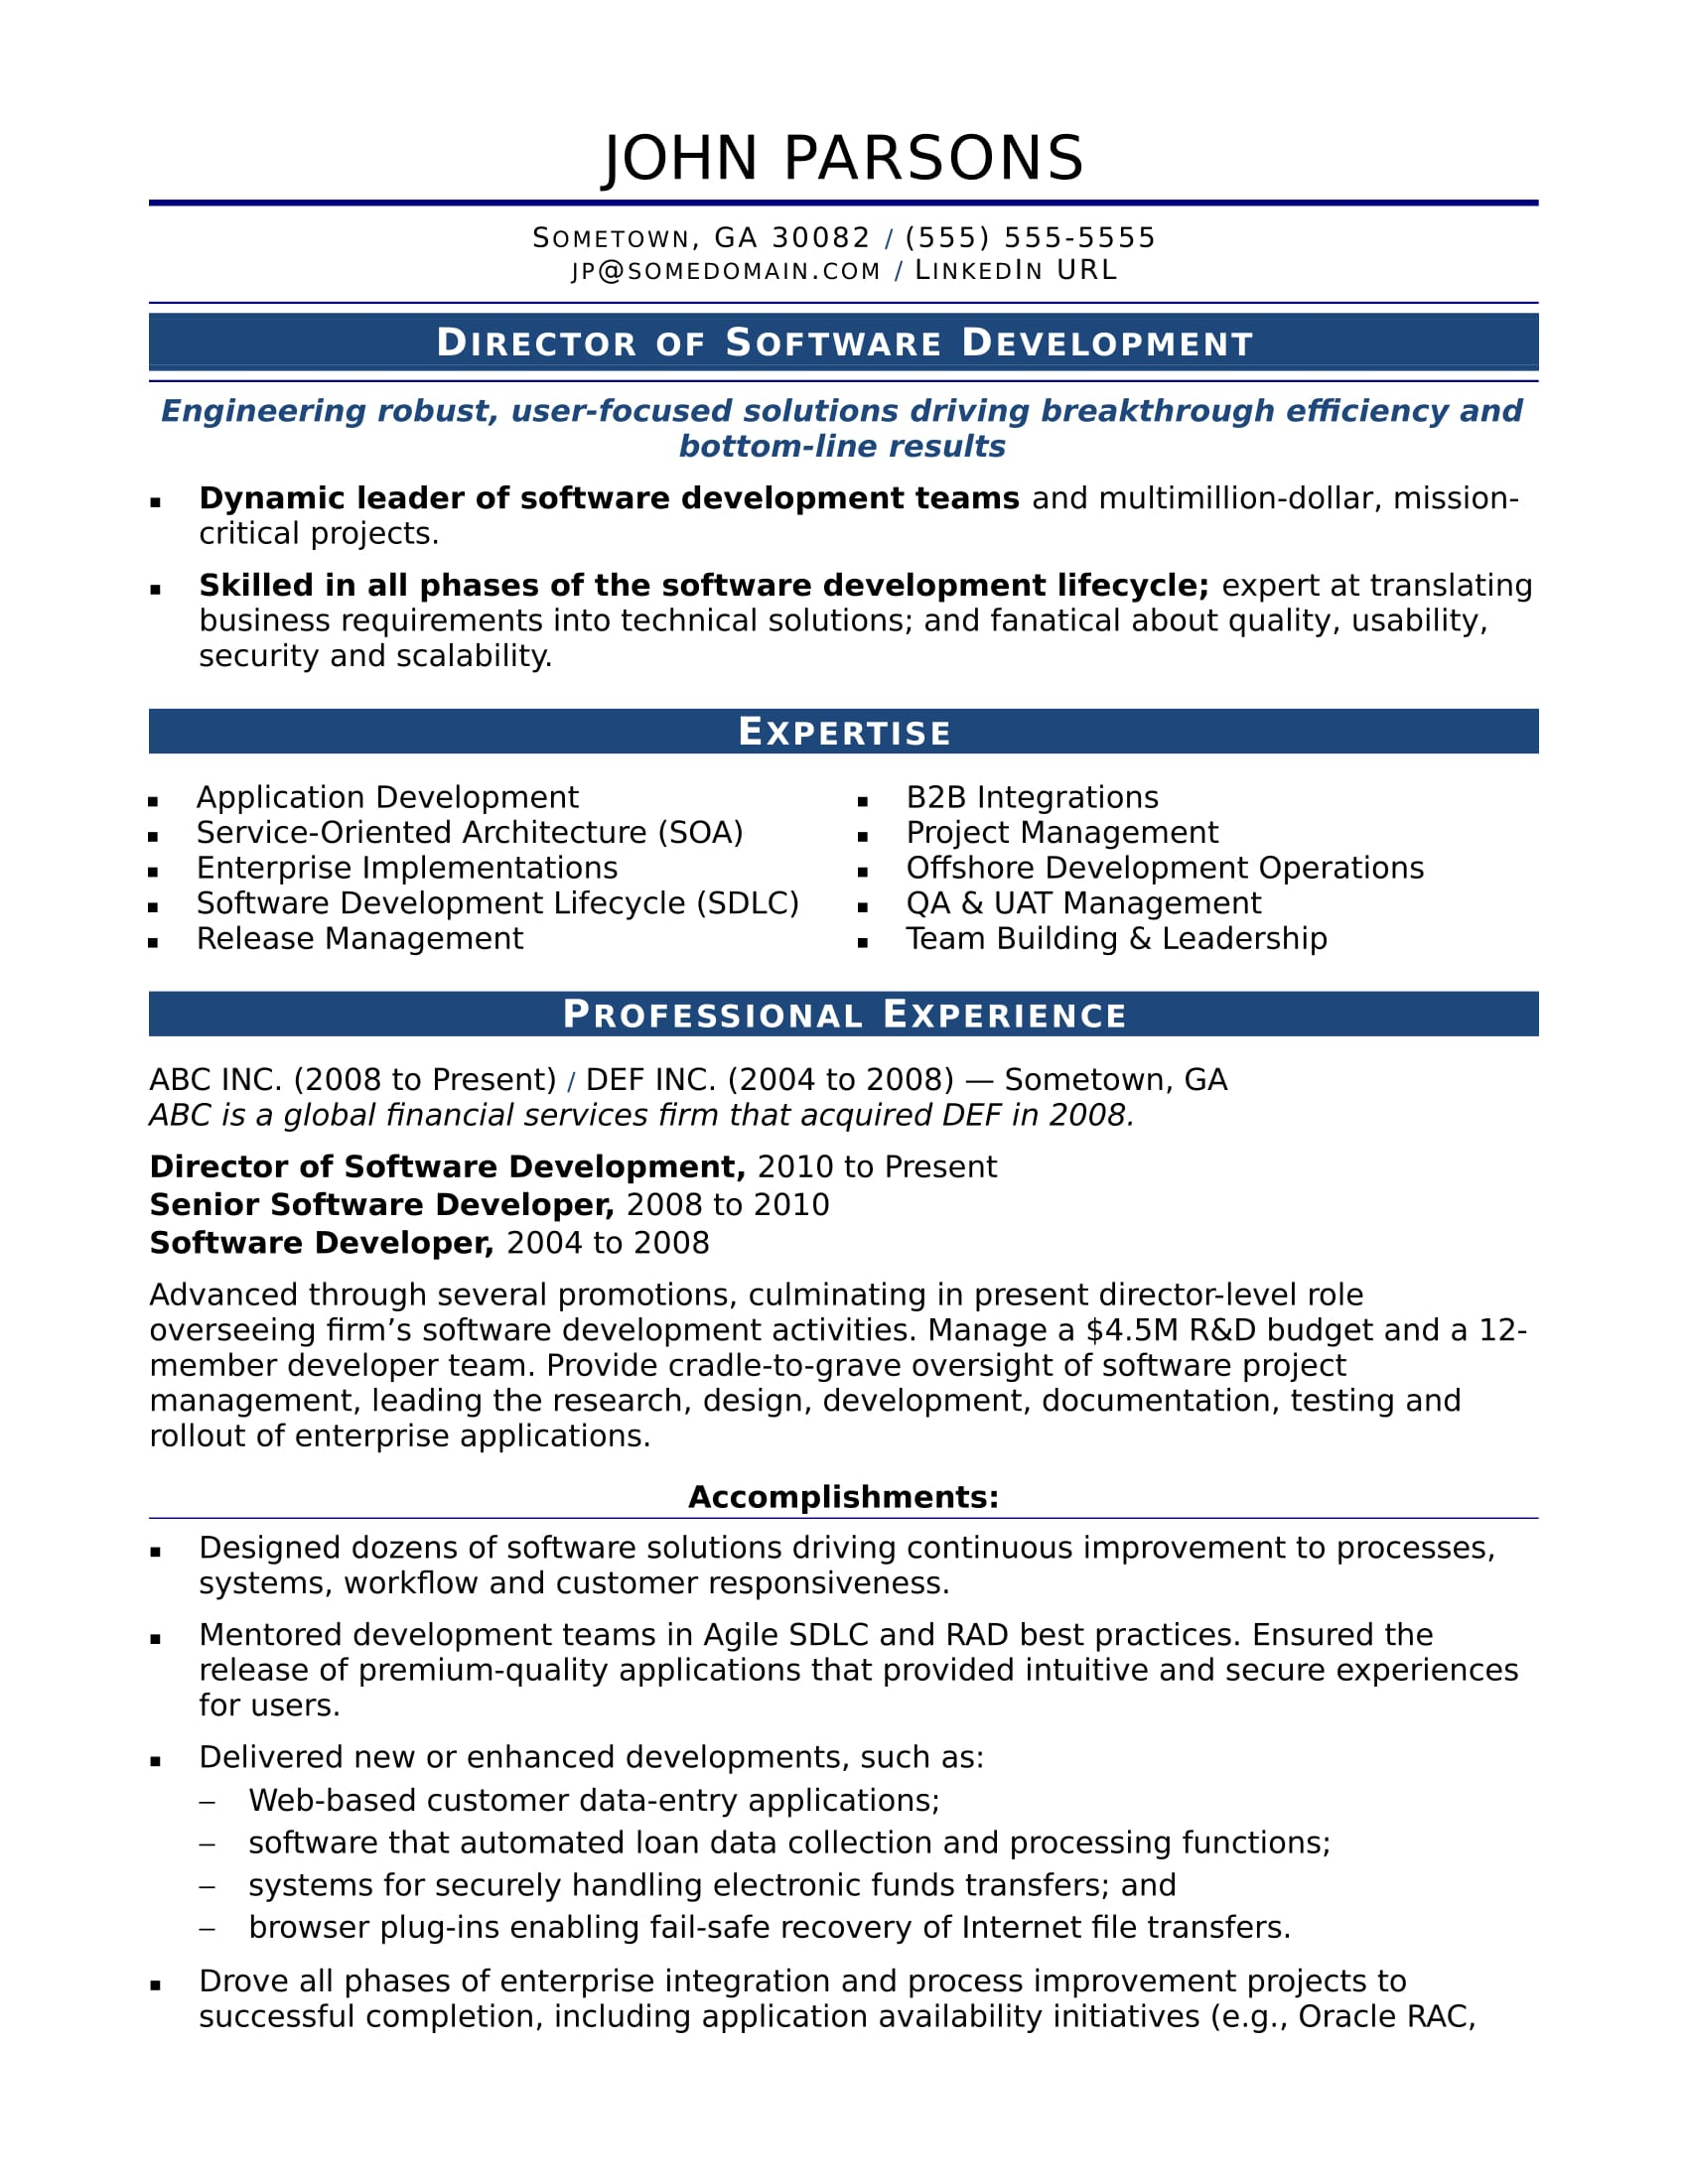 sample resume for an experienced it developer monster experience with software on cahier Resume Experience With Software On Resume